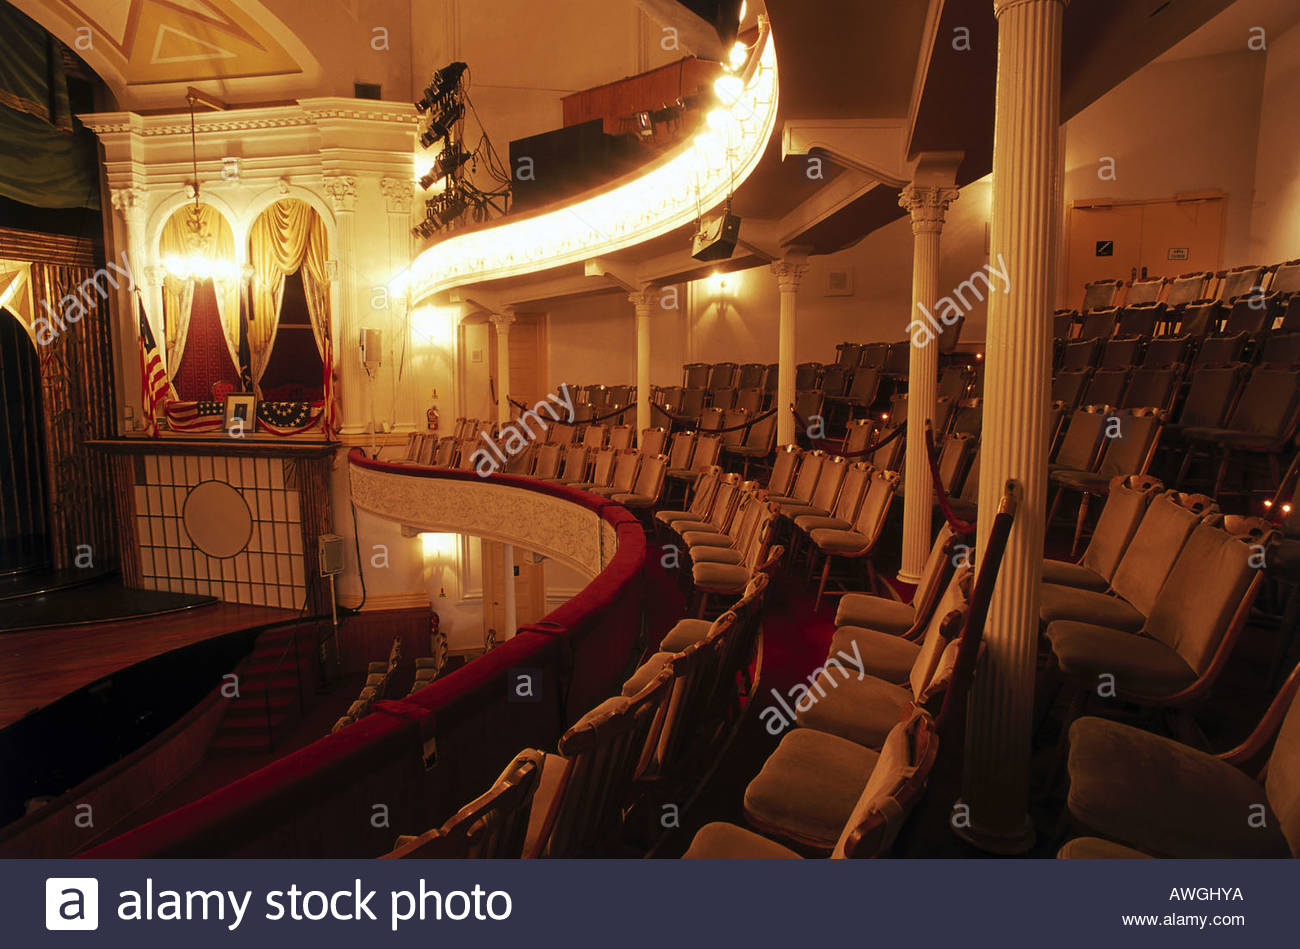 USA, Washington, D.C., Ford's Theater, interior of one of America's best-known historic sites housing theater company and museum - Stock Image